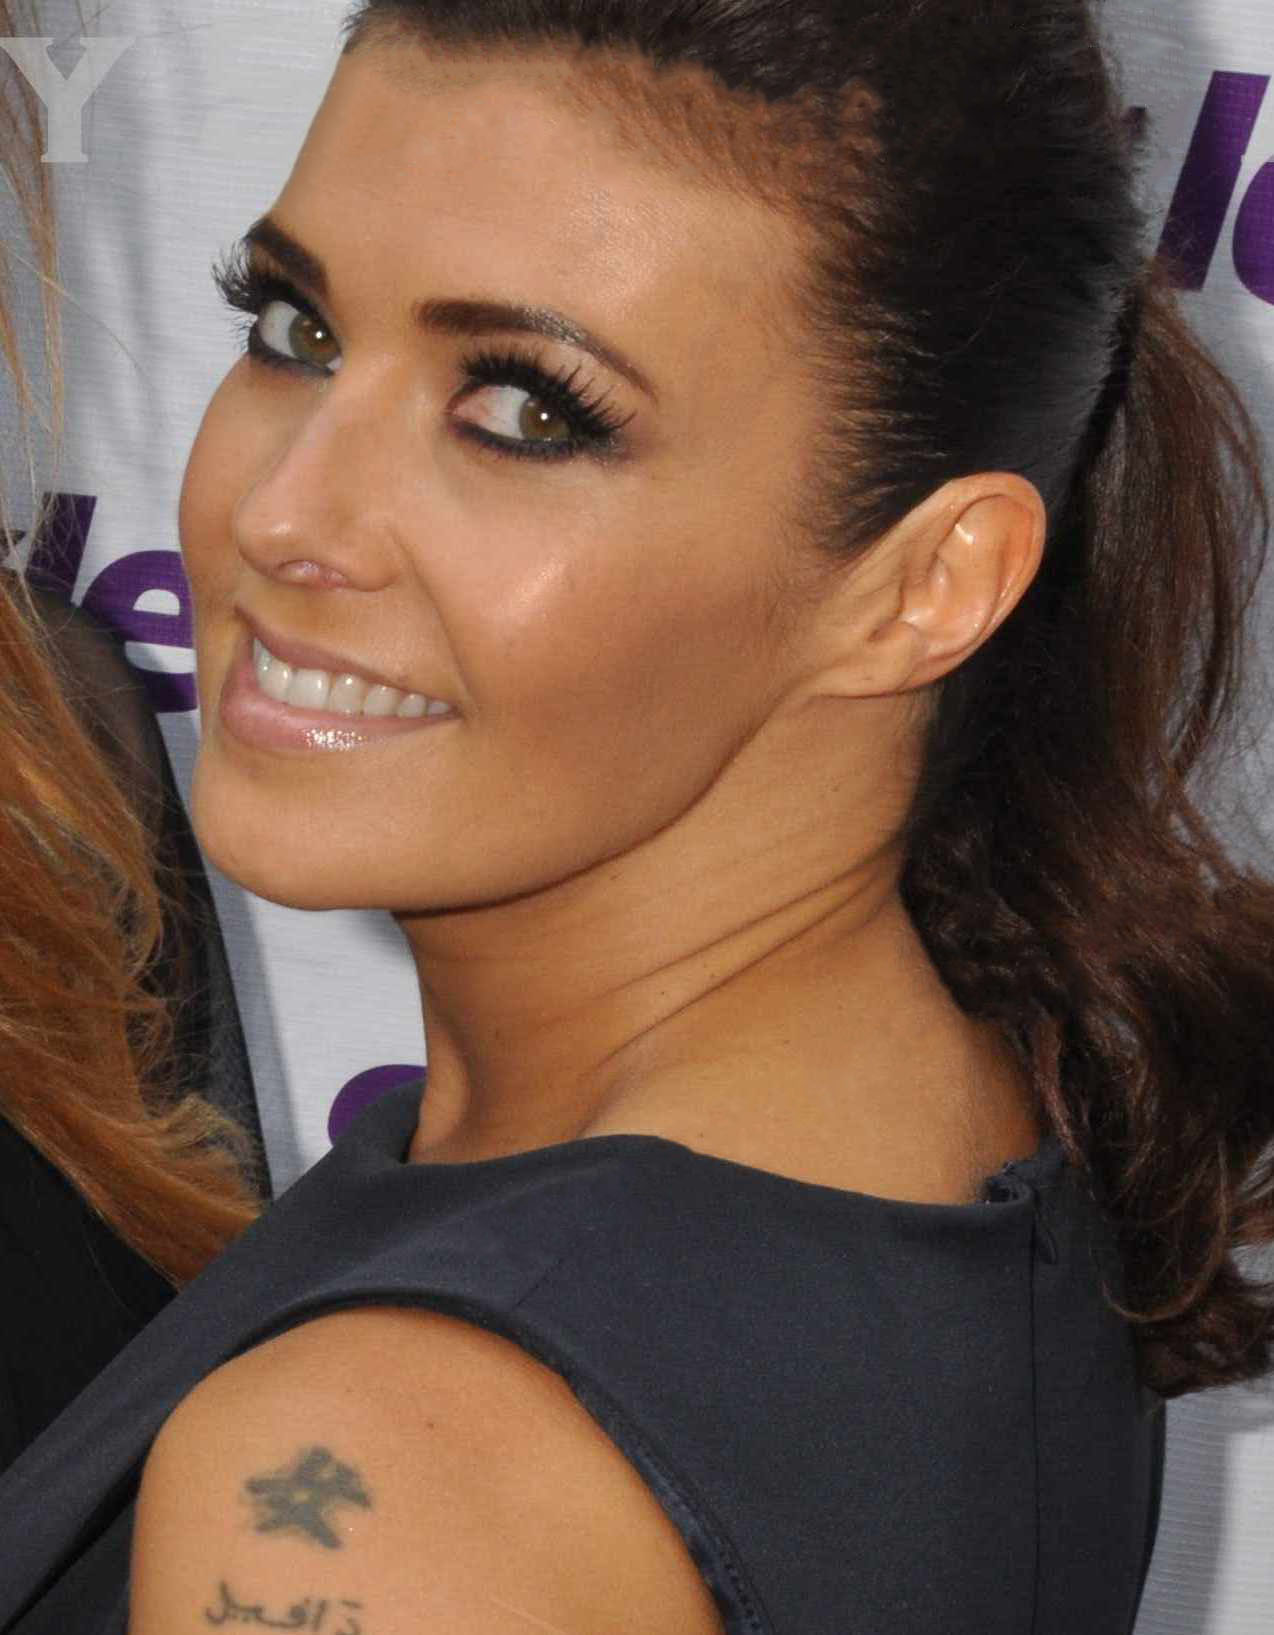 Kym Marsh (born 1976)